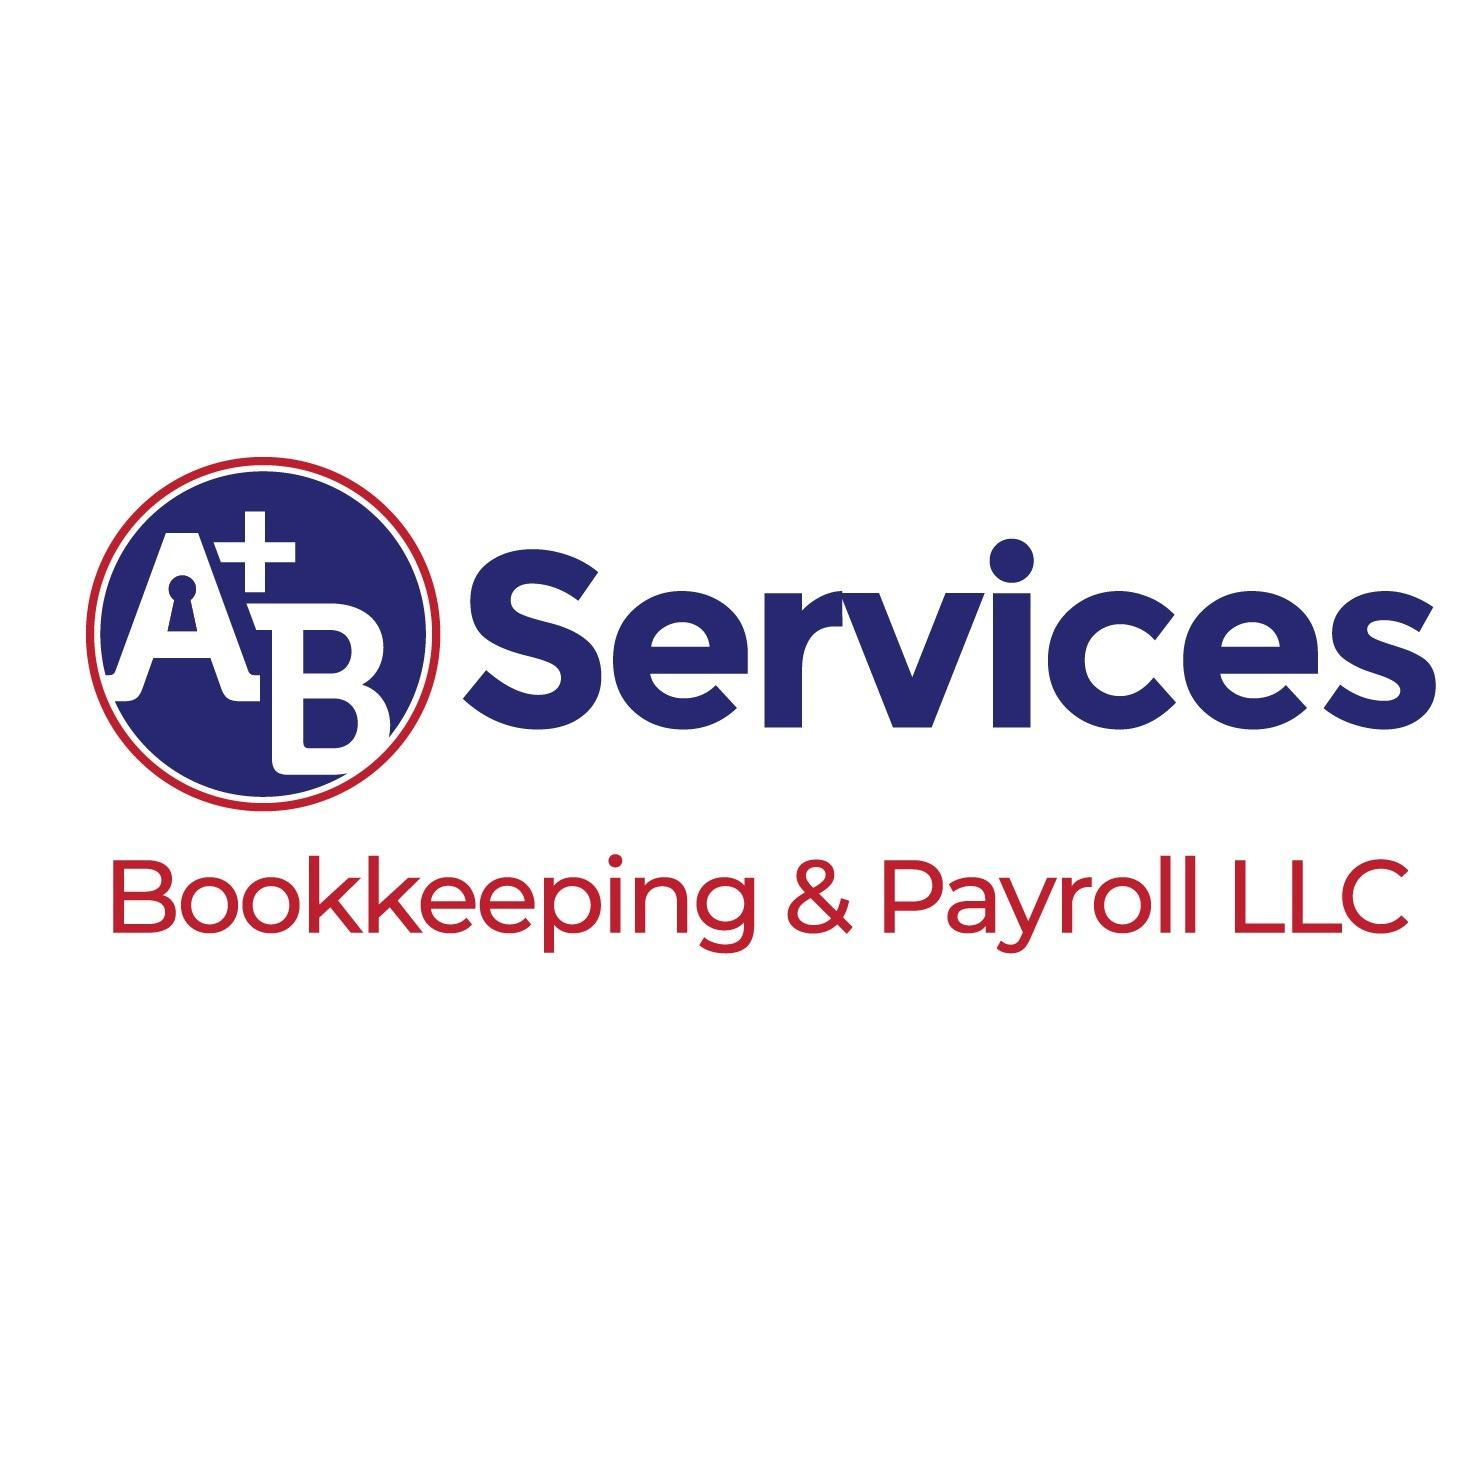 A Plus B Services, Bookkeeping and Payroll